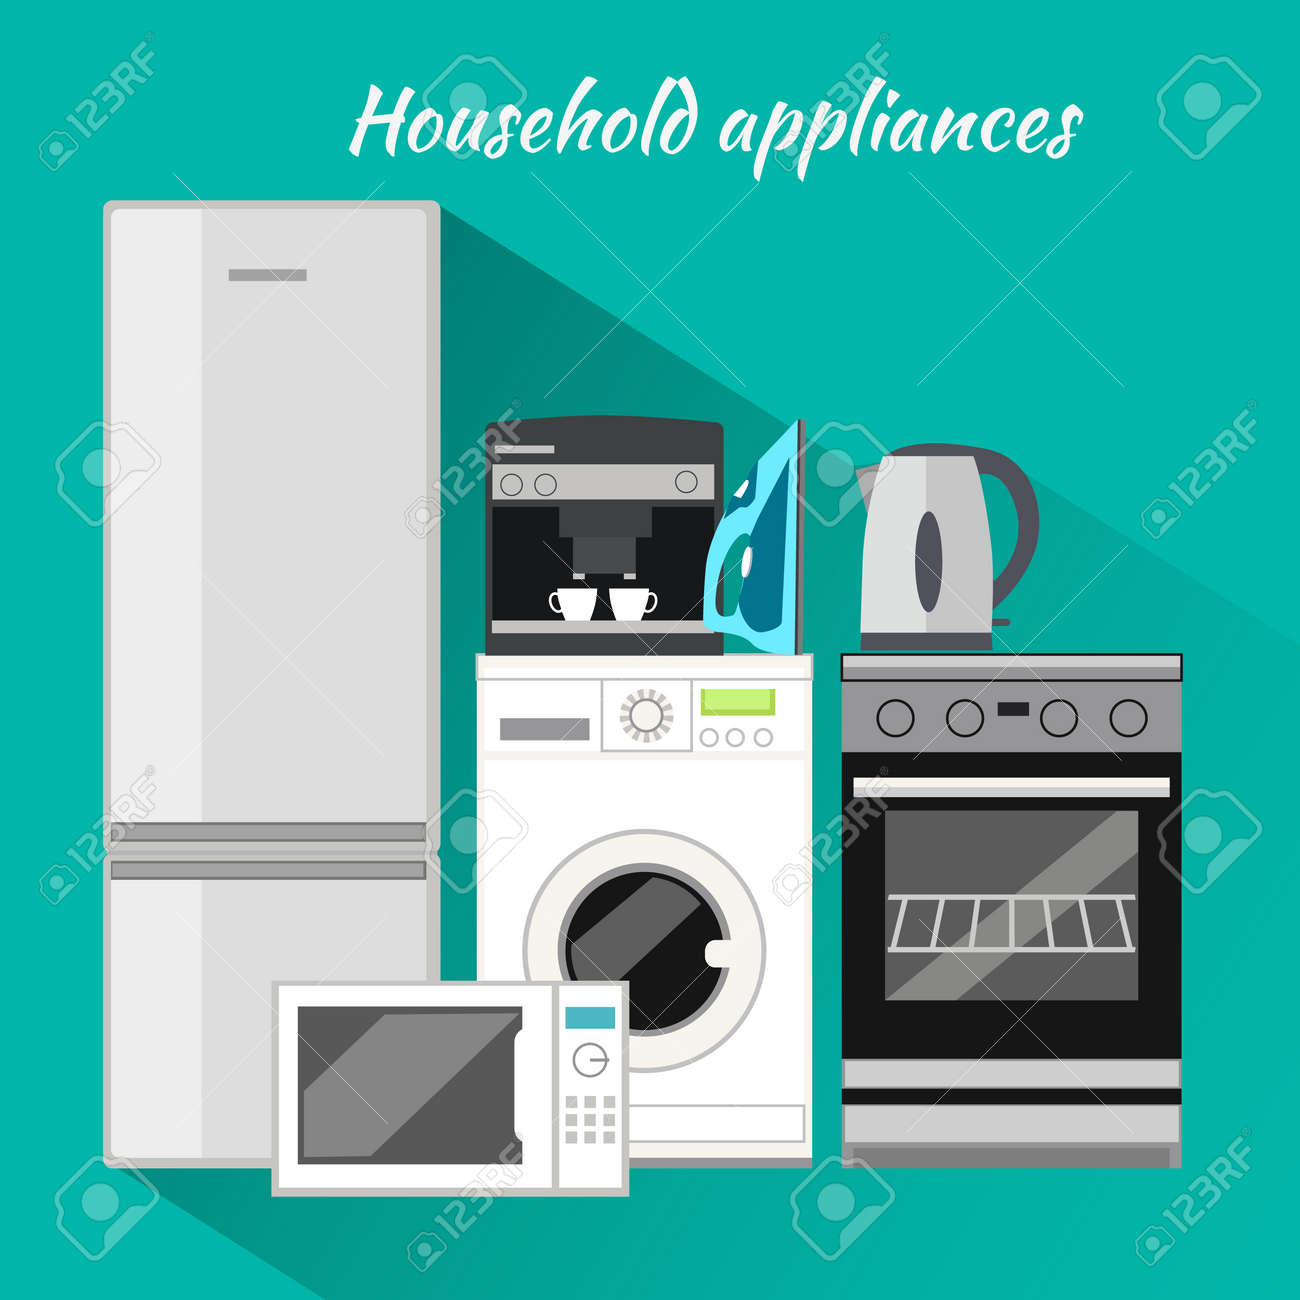 Uncategorized Domestic Kitchen Appliances household appliances flat design items washing machine kitchen equipment and